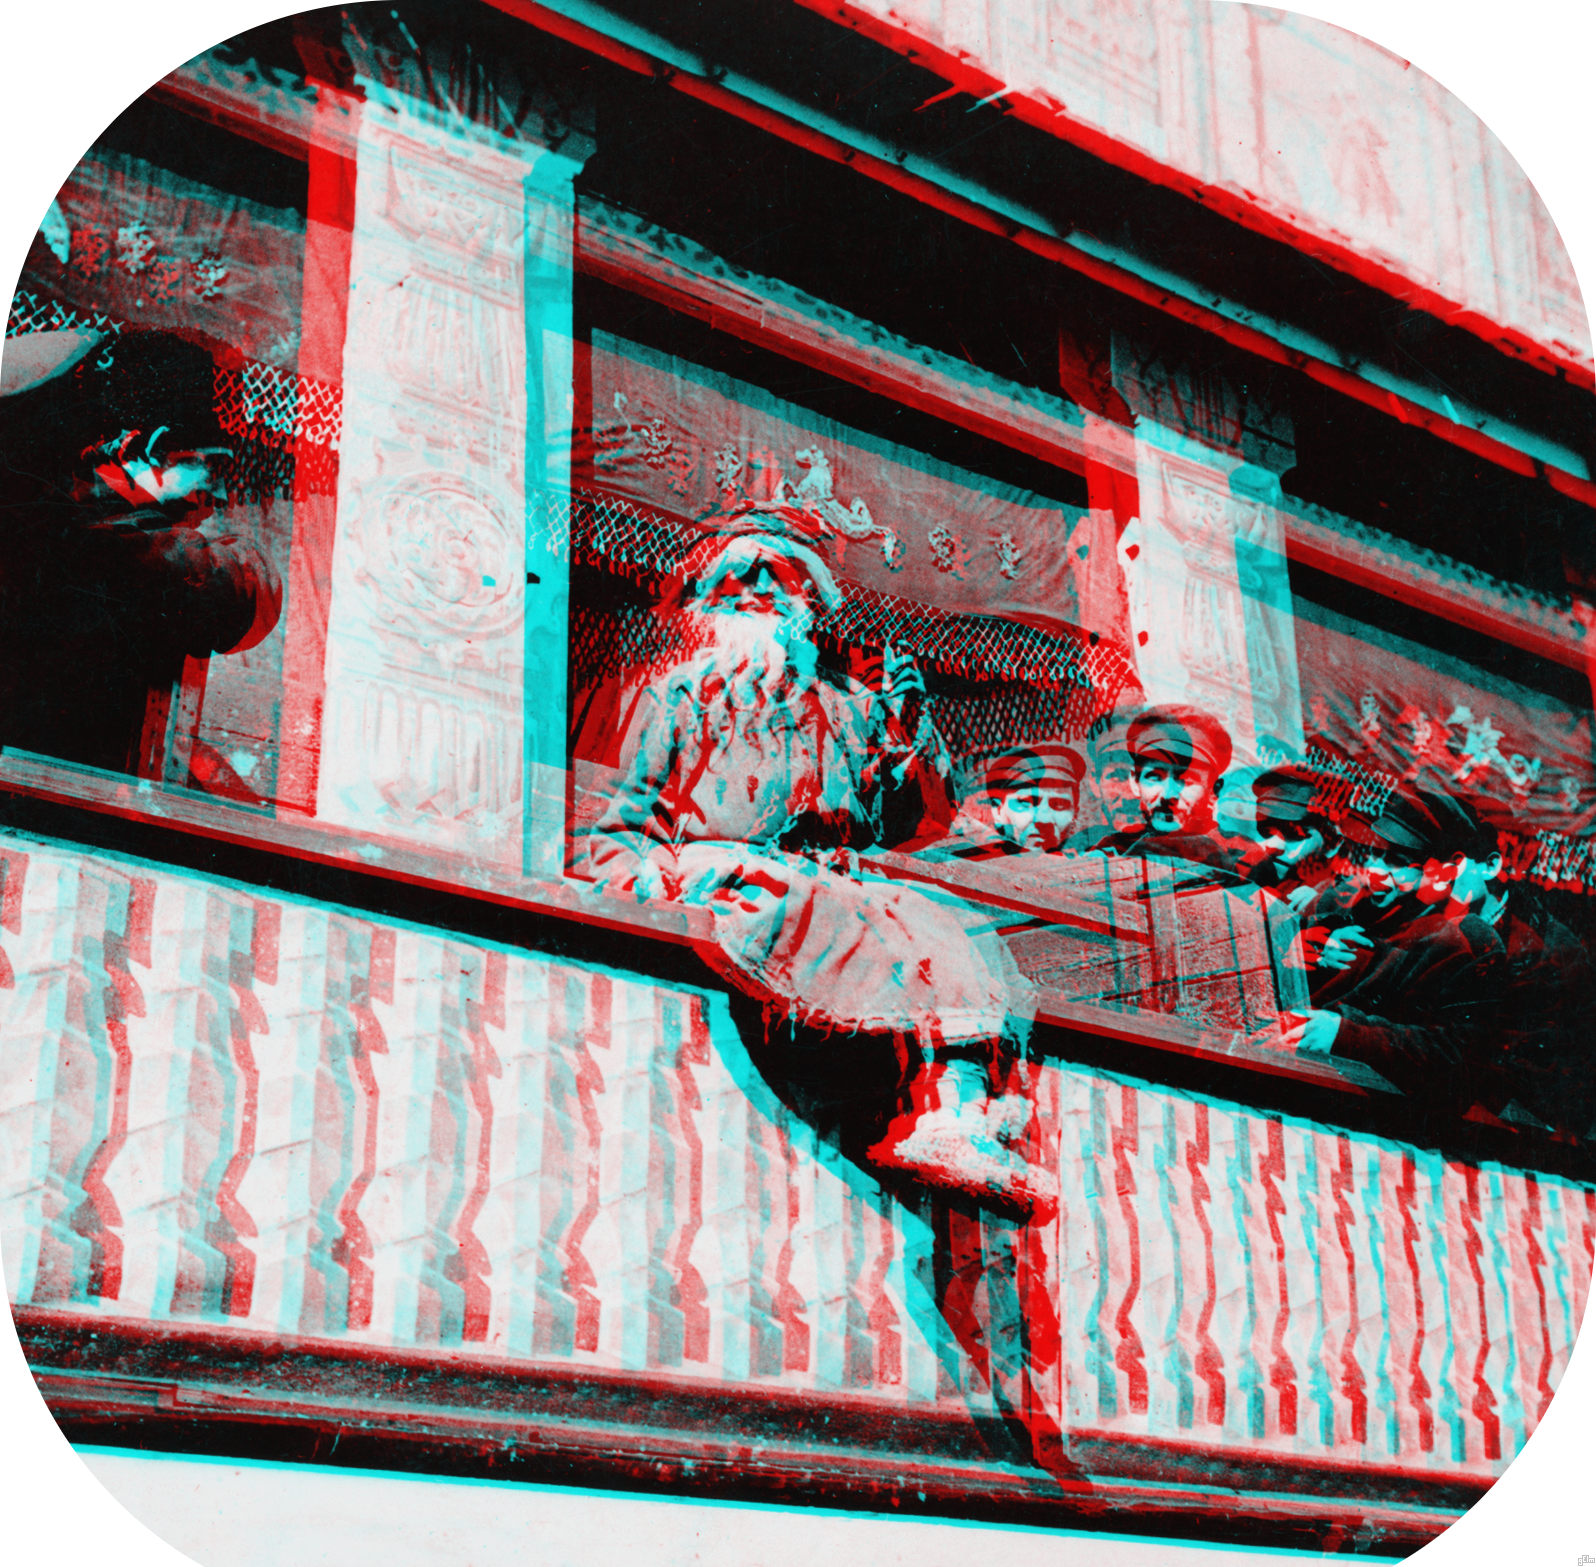 Stoic Decay: 3D Library of Congress: Nine